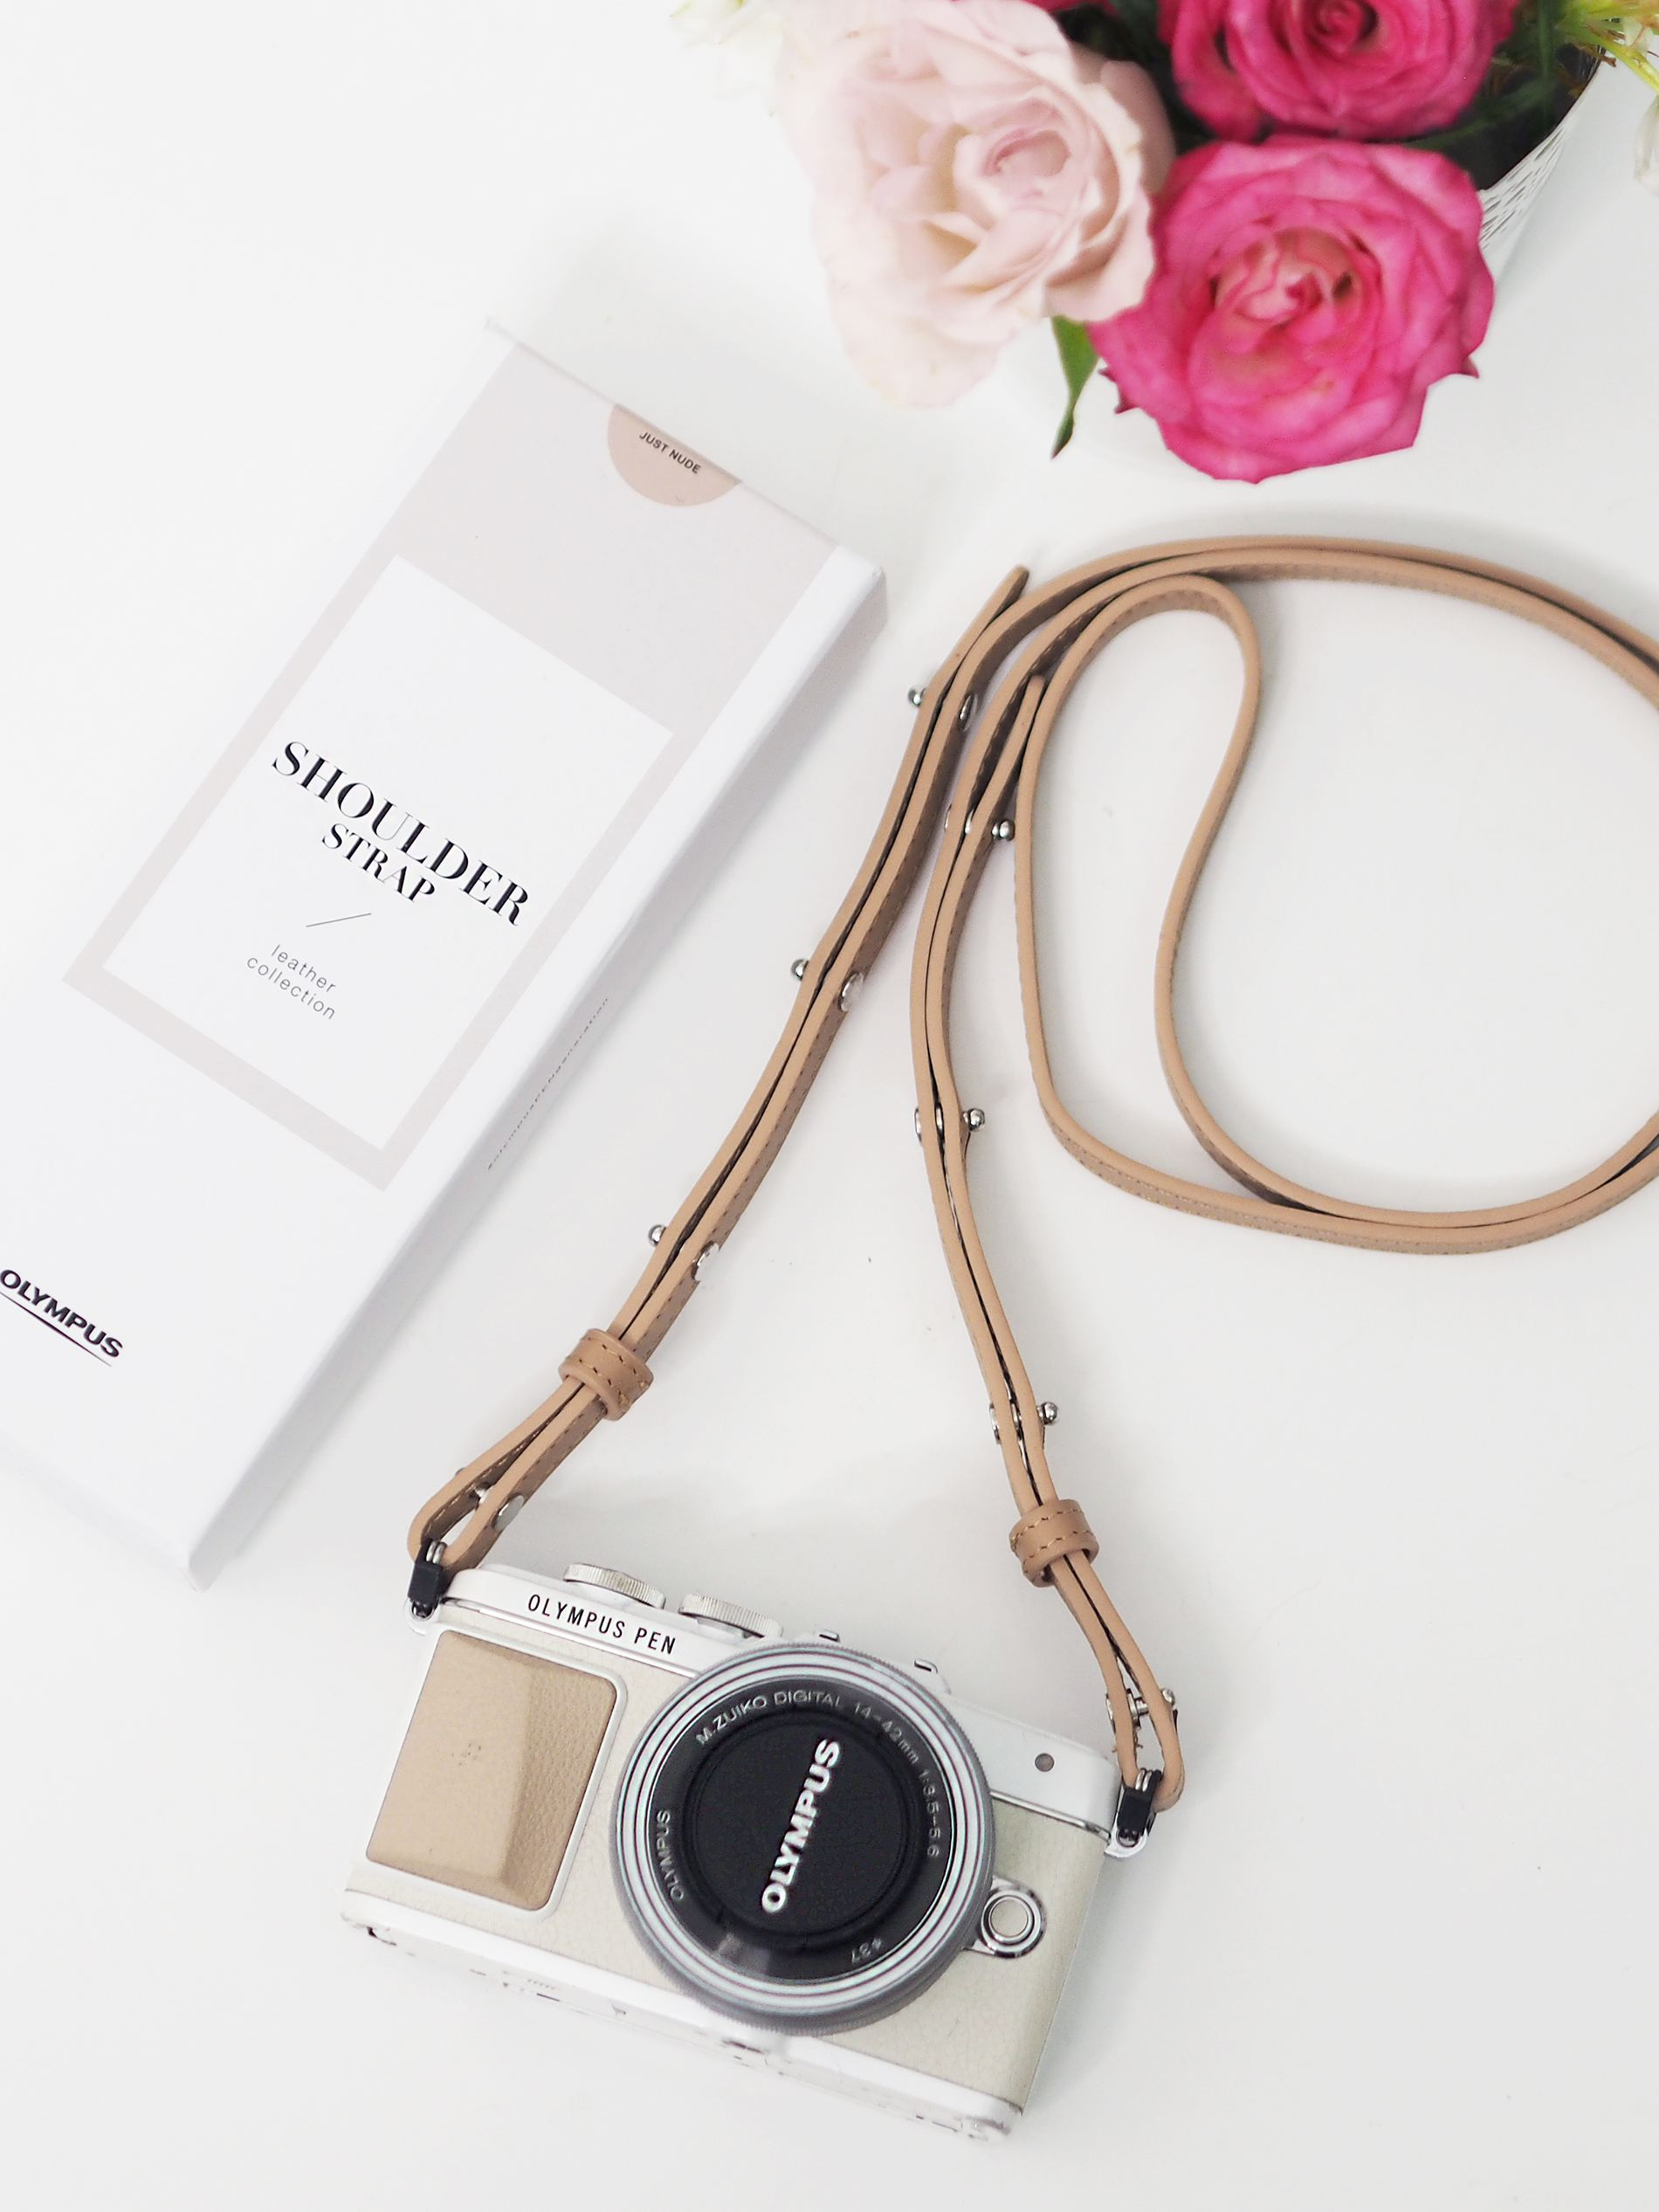 olympus pen nude leather strap